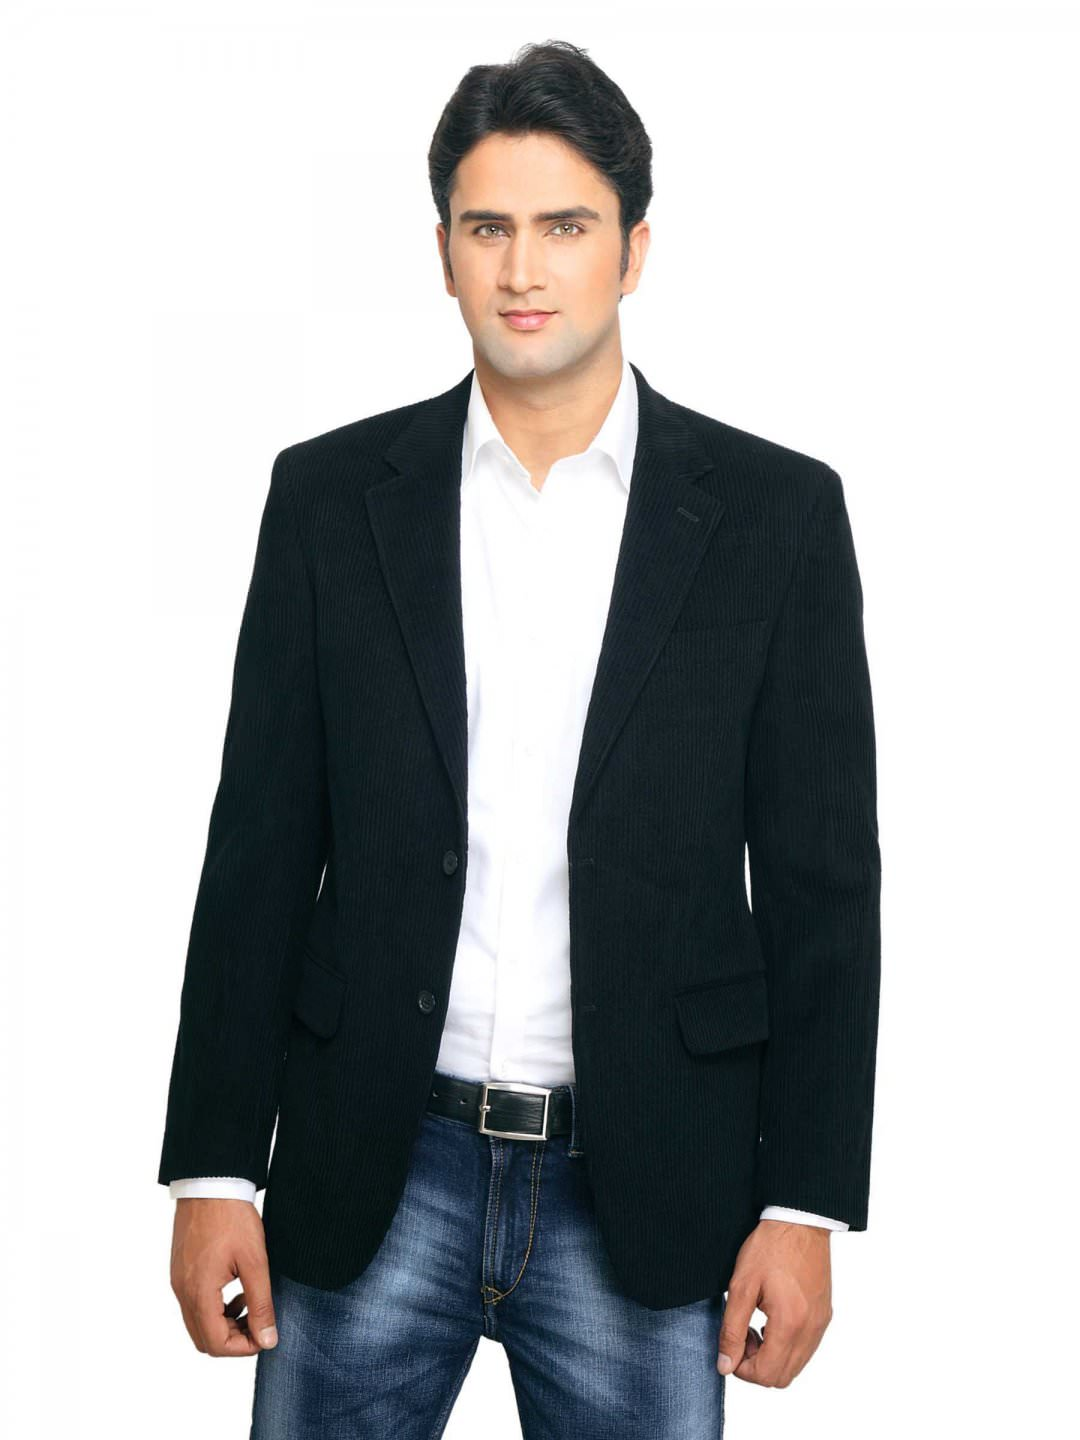 """Semi formal, as the name implies, is slightly more relaxed – think a dark suit and a tie, or anything you'd refer to as """"cocktail"""" dress. Men's Formal Attire Tom Ford."""